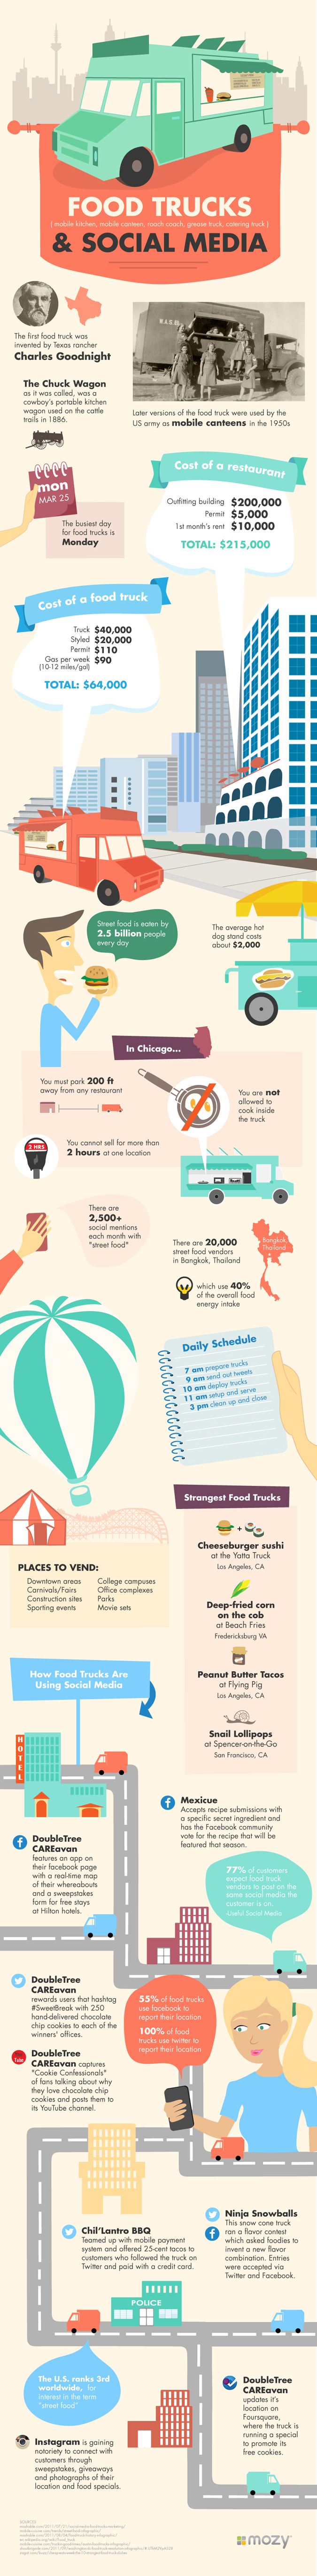 Food Truck Infographic_MOZY